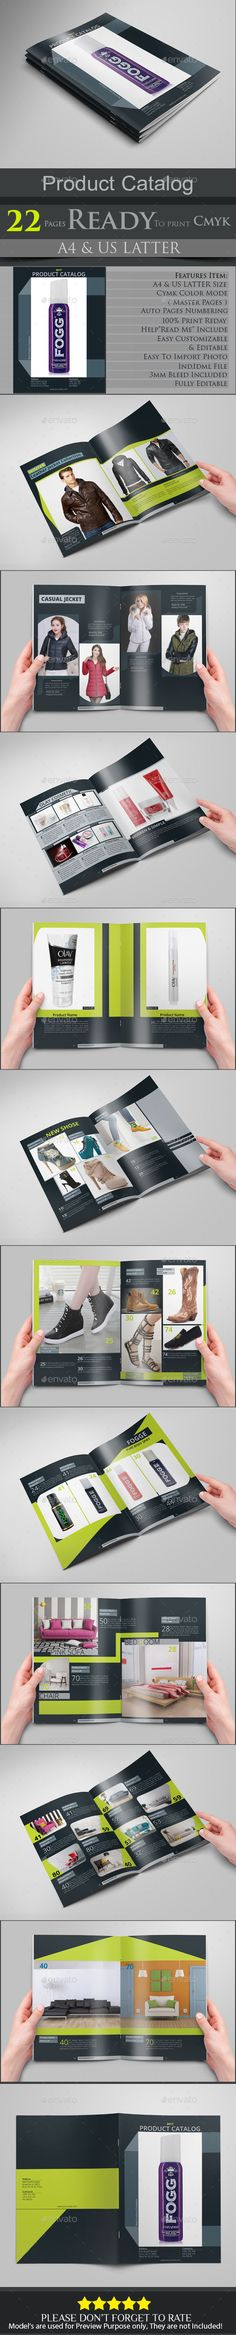 Product Magazines - Magazines Print Templates Download here : https://graphicriver.net/item/product-magazines/16776053?s_rank=167&ref=Al-fatih